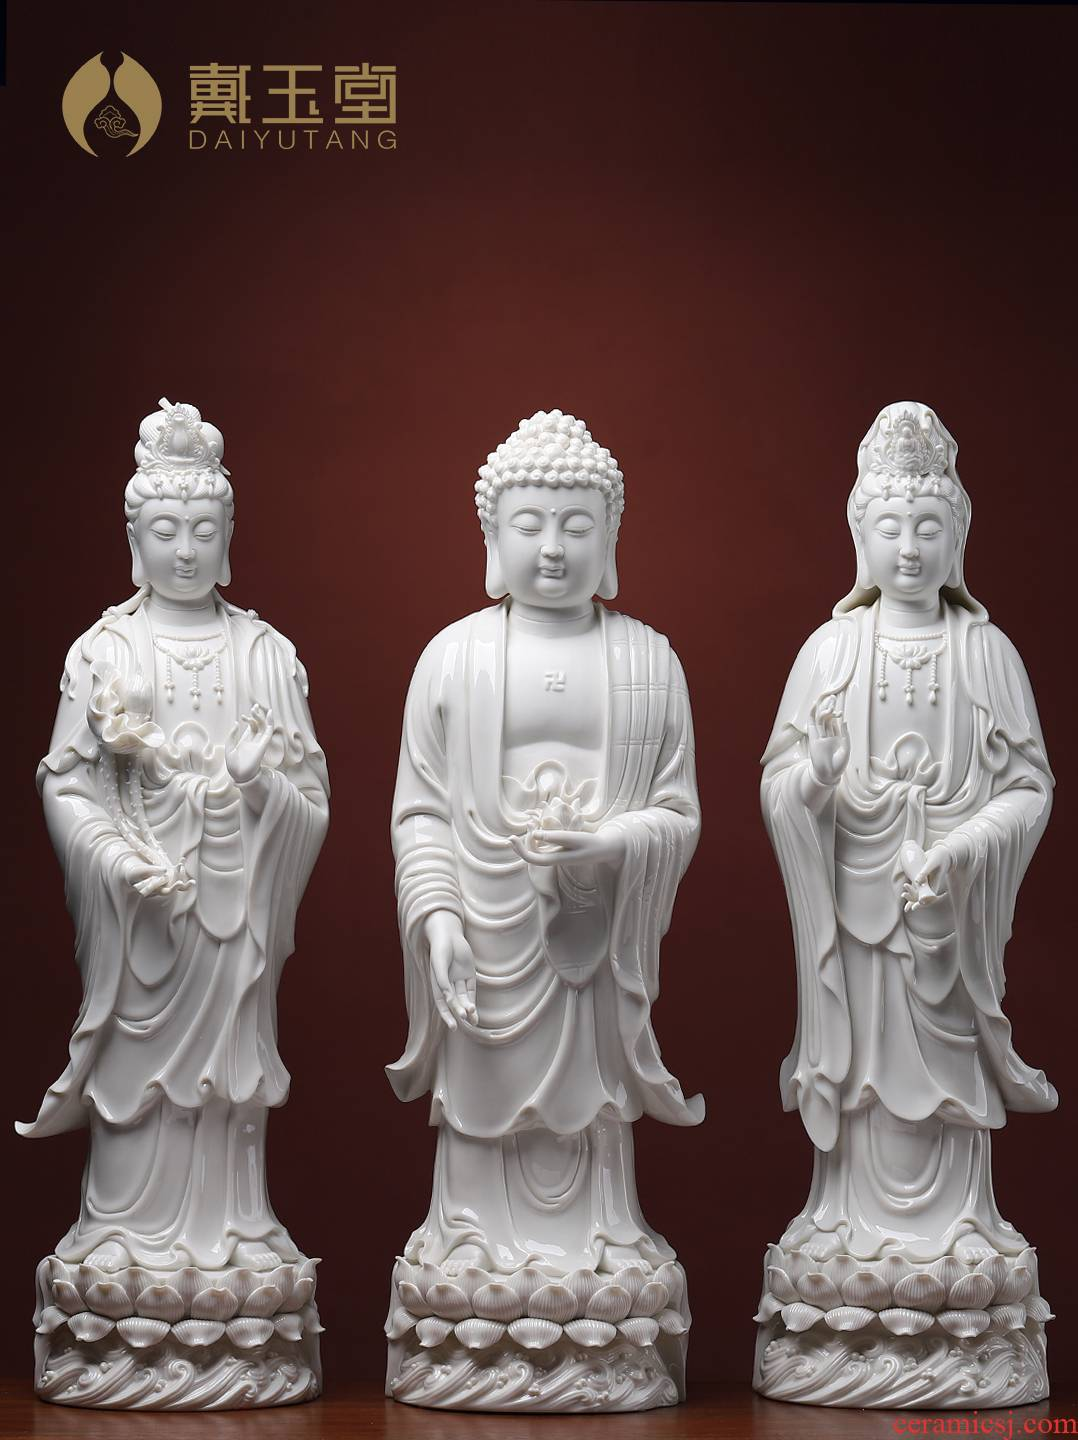 Yutang dai ceramic amida Buddha guanyin trend to three holy spirit of Buddha enshrined 22 inches jade white western as furnishing articles